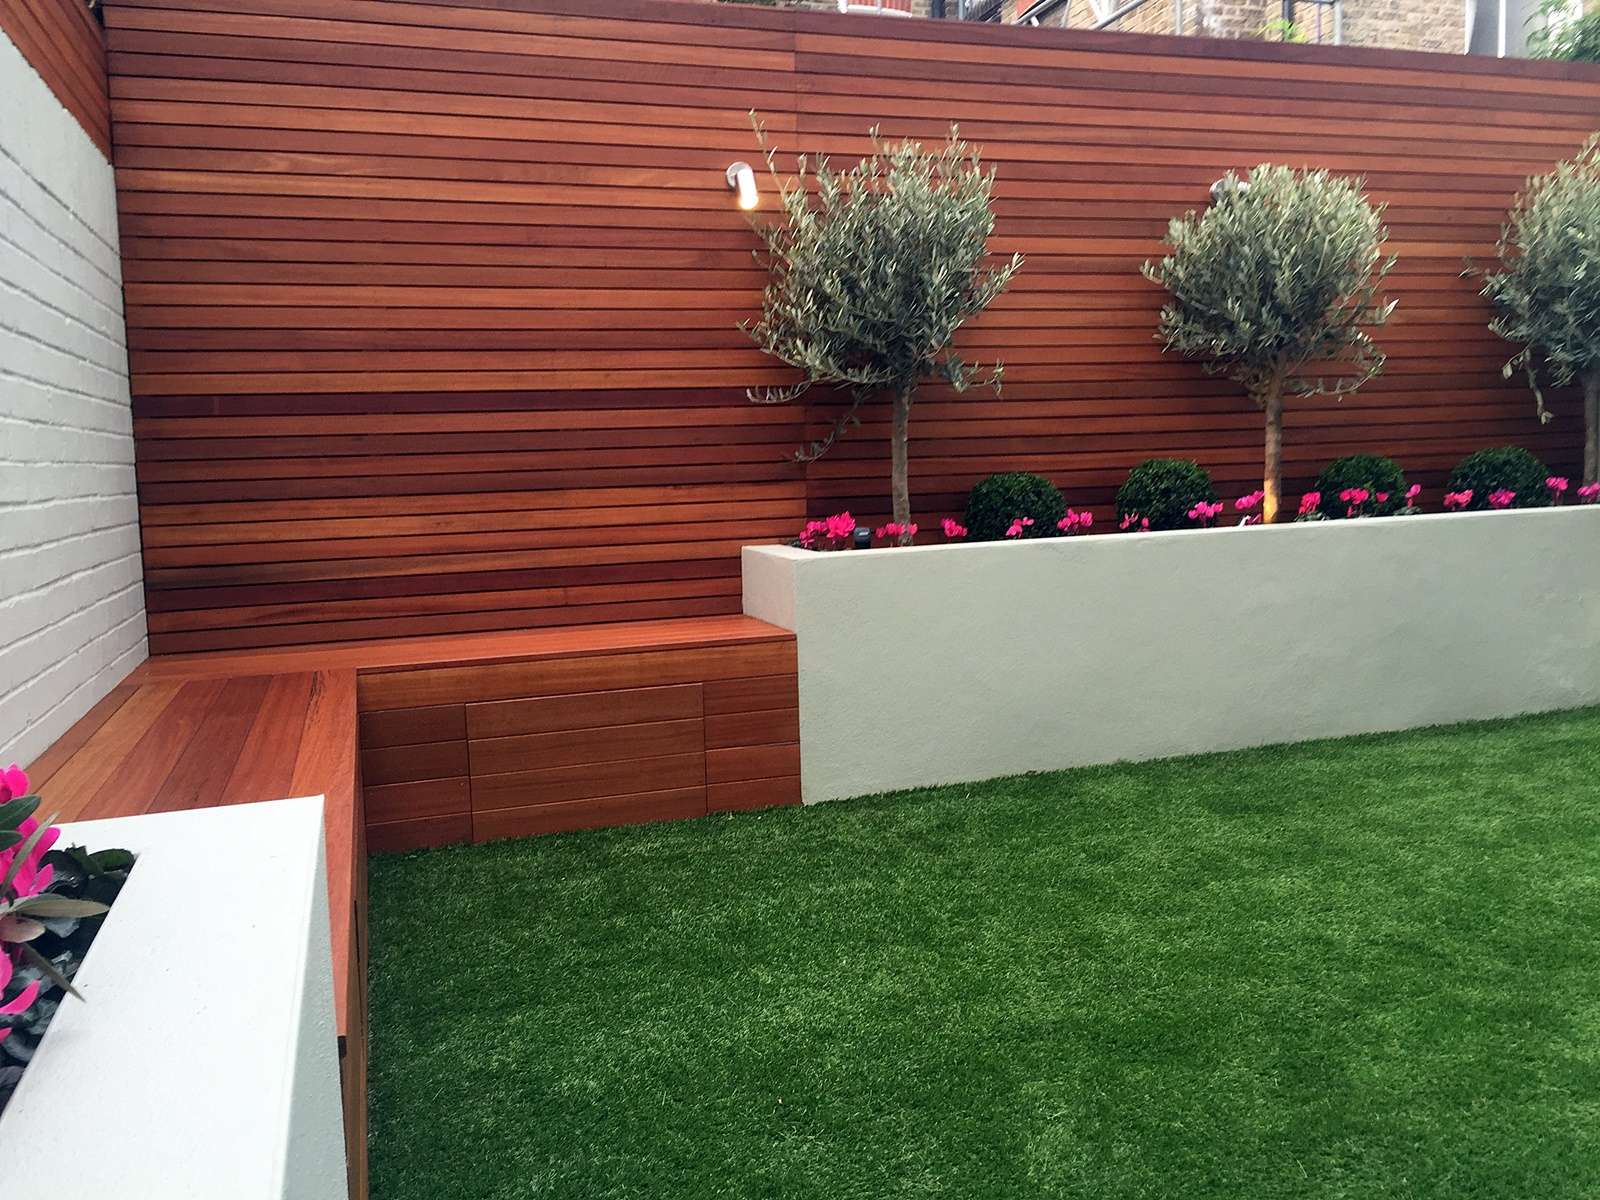 raised beds hardwood bench low maintenance modern garden design courtyard builder olive trees cyclamen lighting irrigation artificial grass battersea balham clapham dulwich london